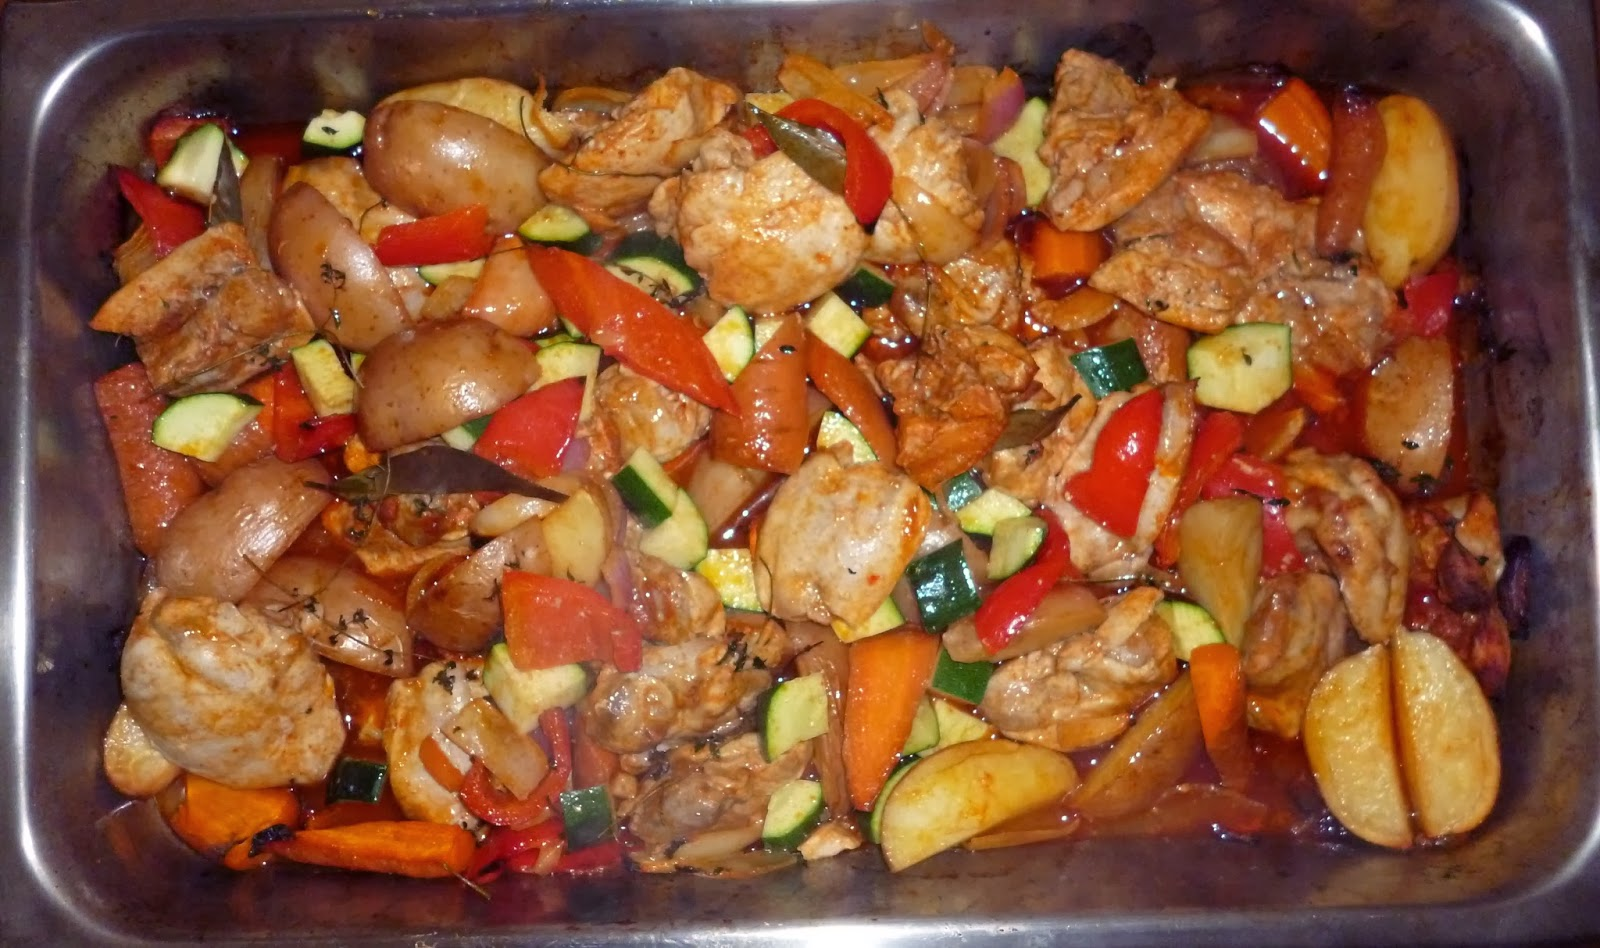 Simmer seasoned chicken breast pieces, veggies, and rice together in a tomato and wine-based sauce for a flavorful and low-fat one-dish meal. Top the finished dish with chopped olives for a Spanish flair.